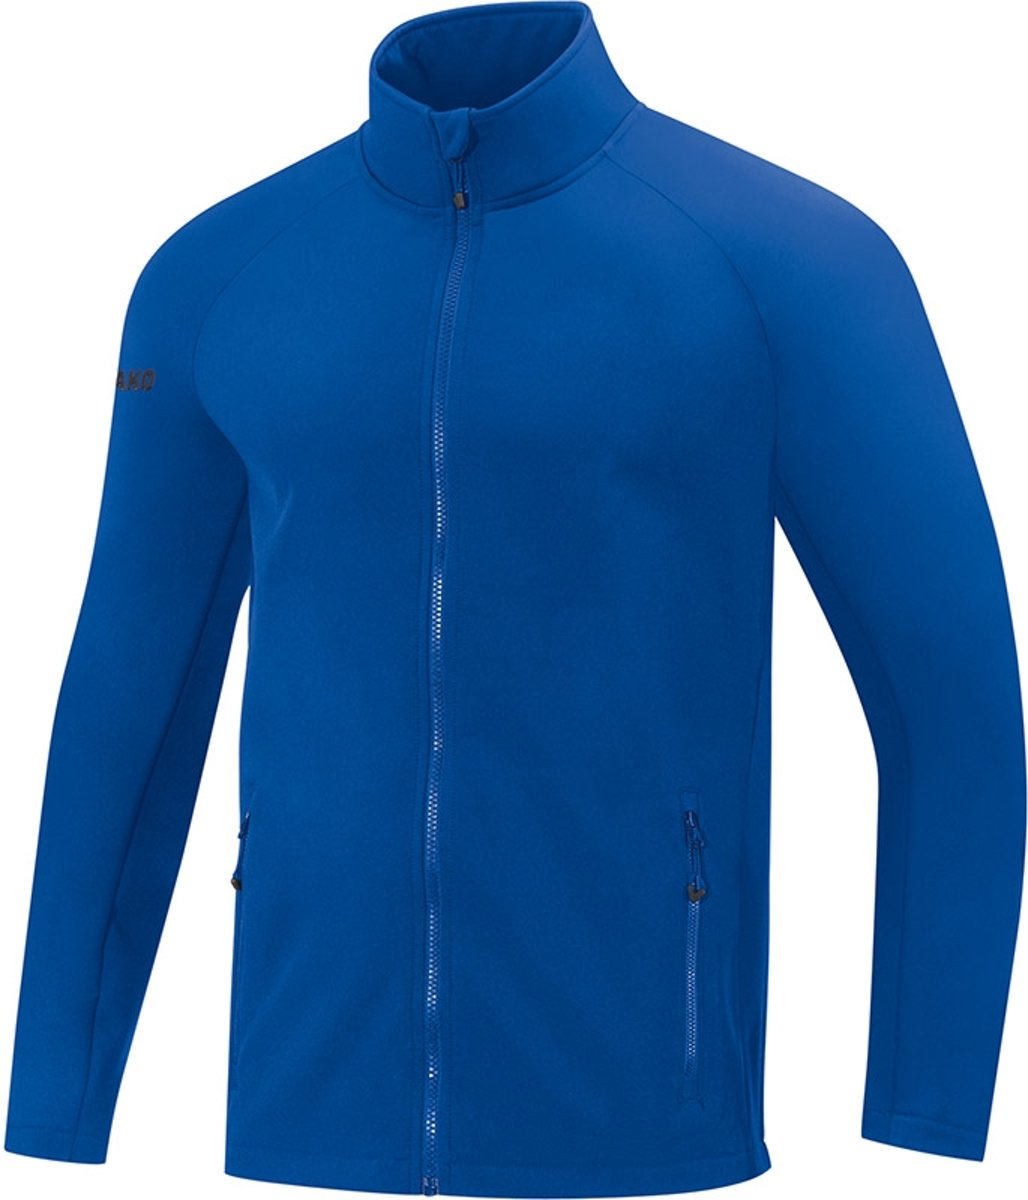 Jako Team Dames Softshell Jas - Softshelljassen  - blauw - 38